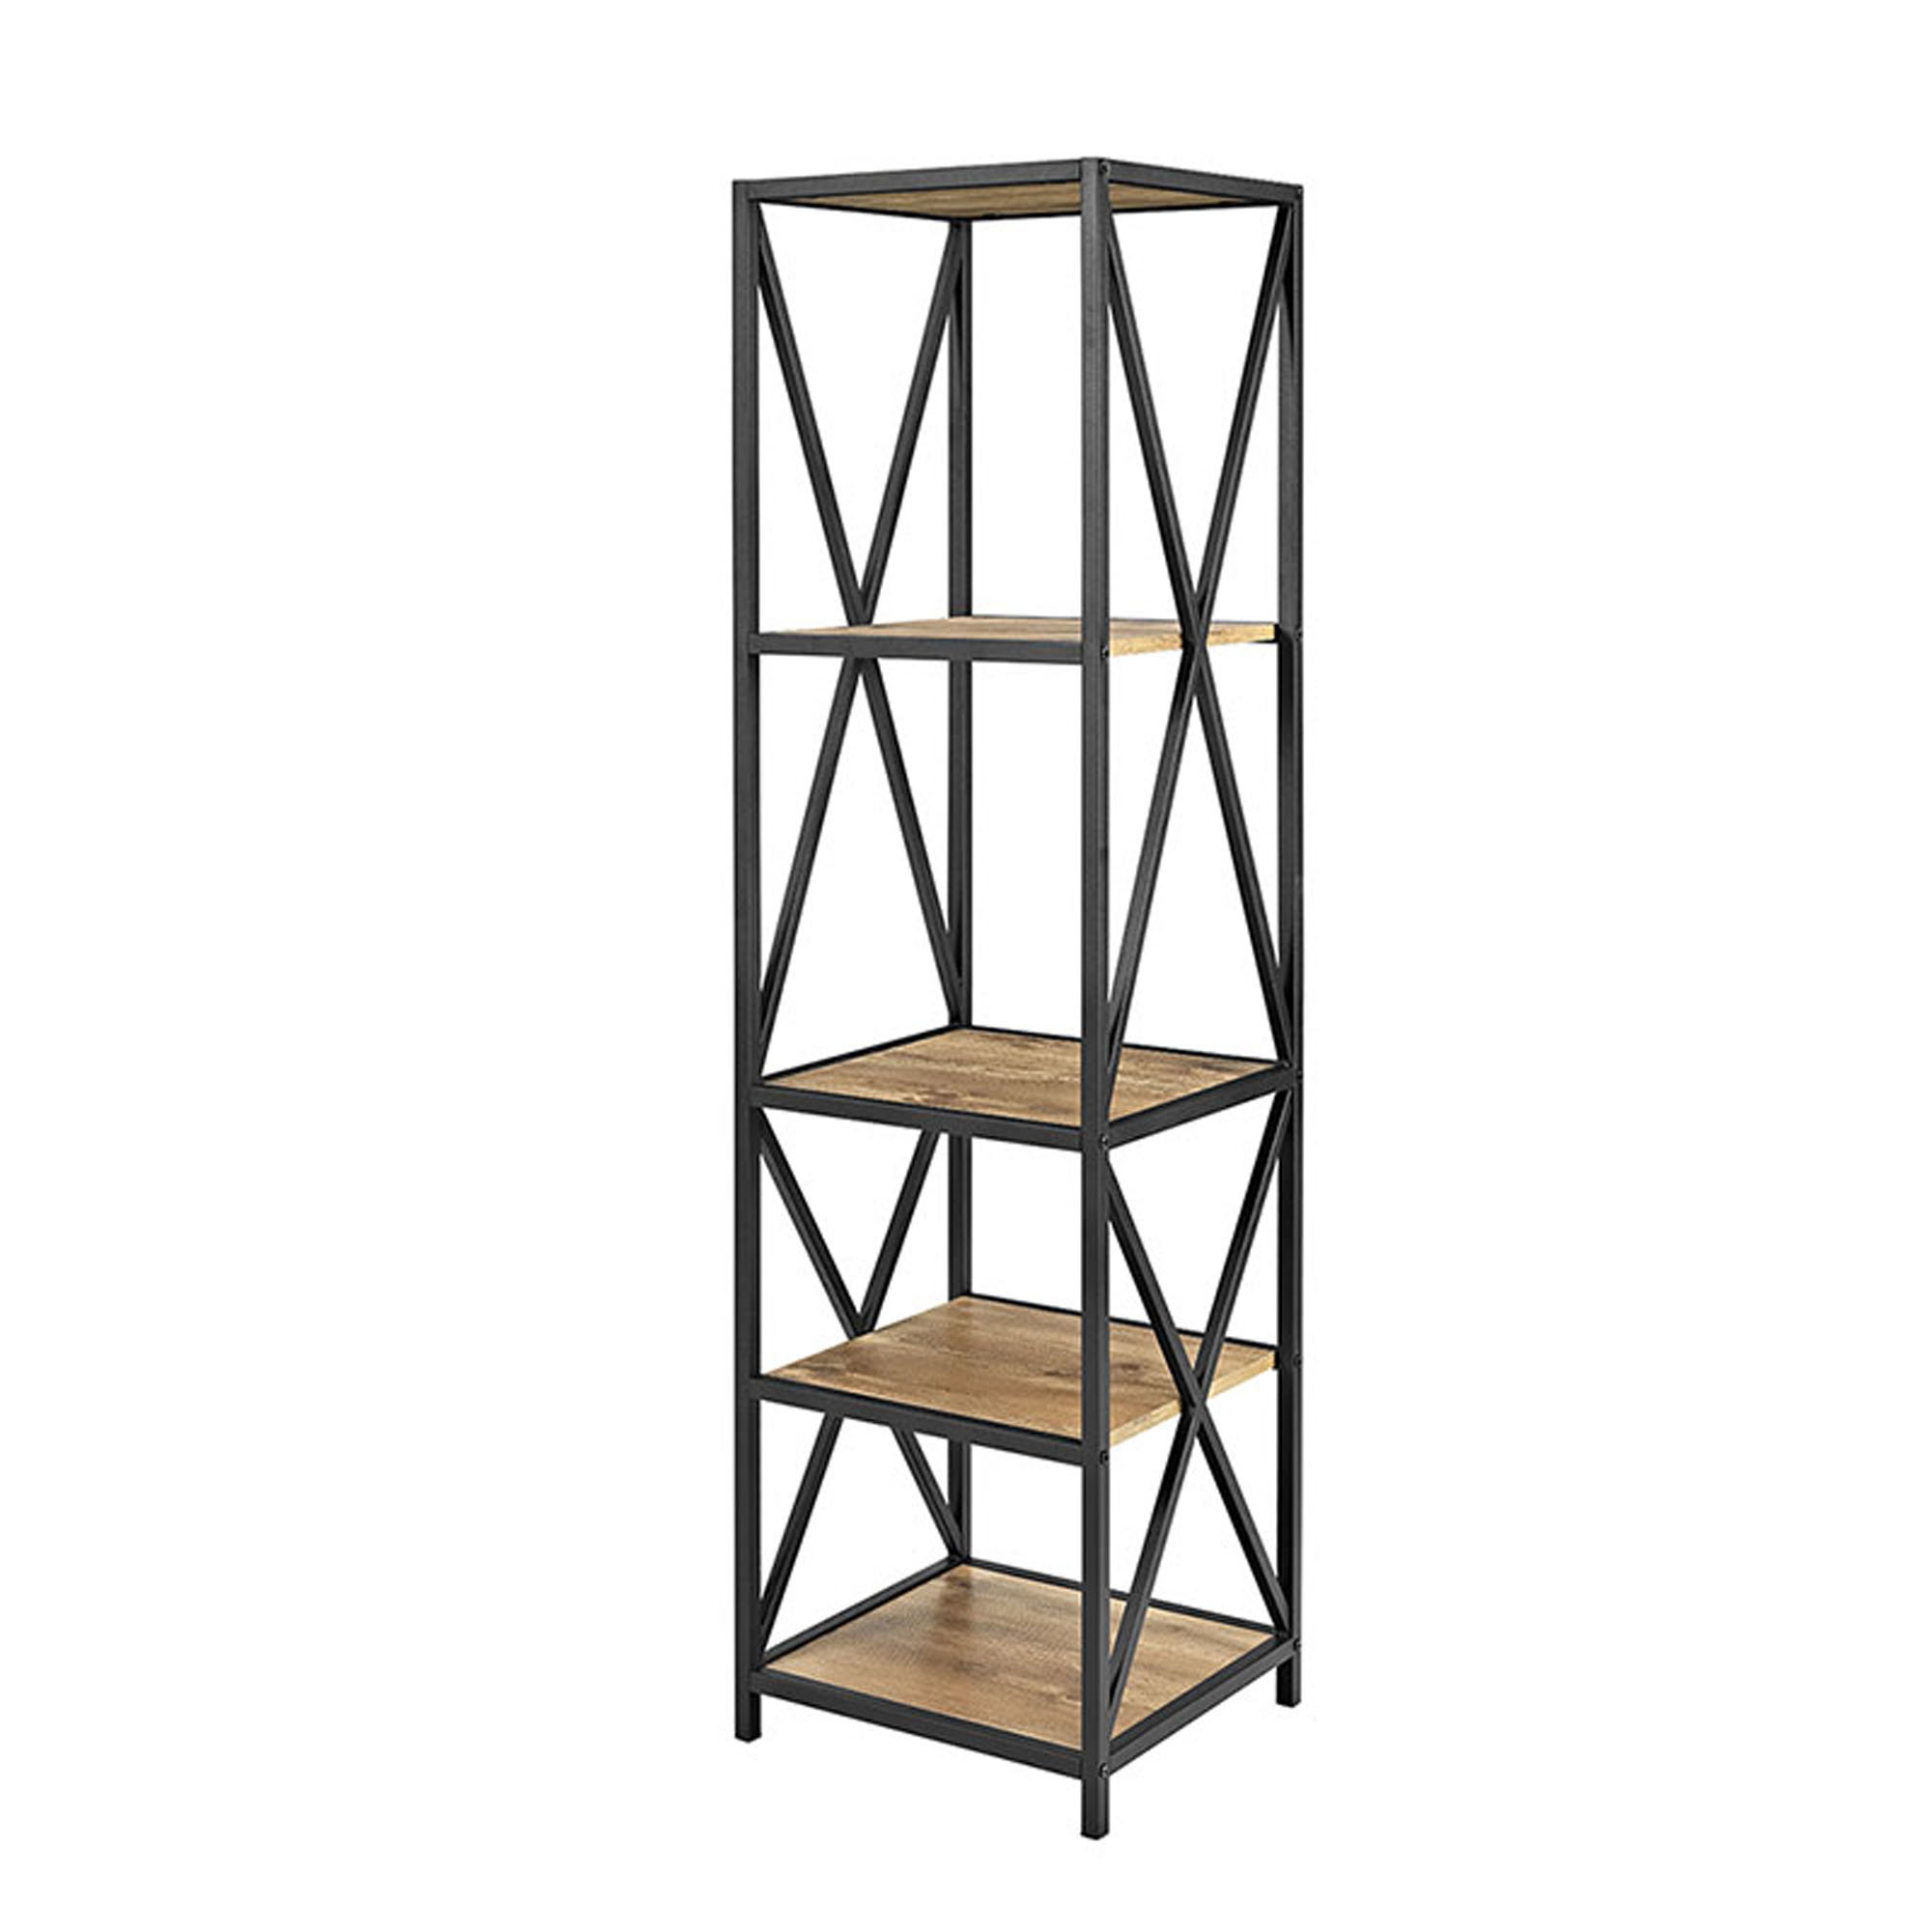 Augustus Etagere Bookcase Intended For Recent Rech 4 Tier Etagere Bookcases (View 3 of 20)